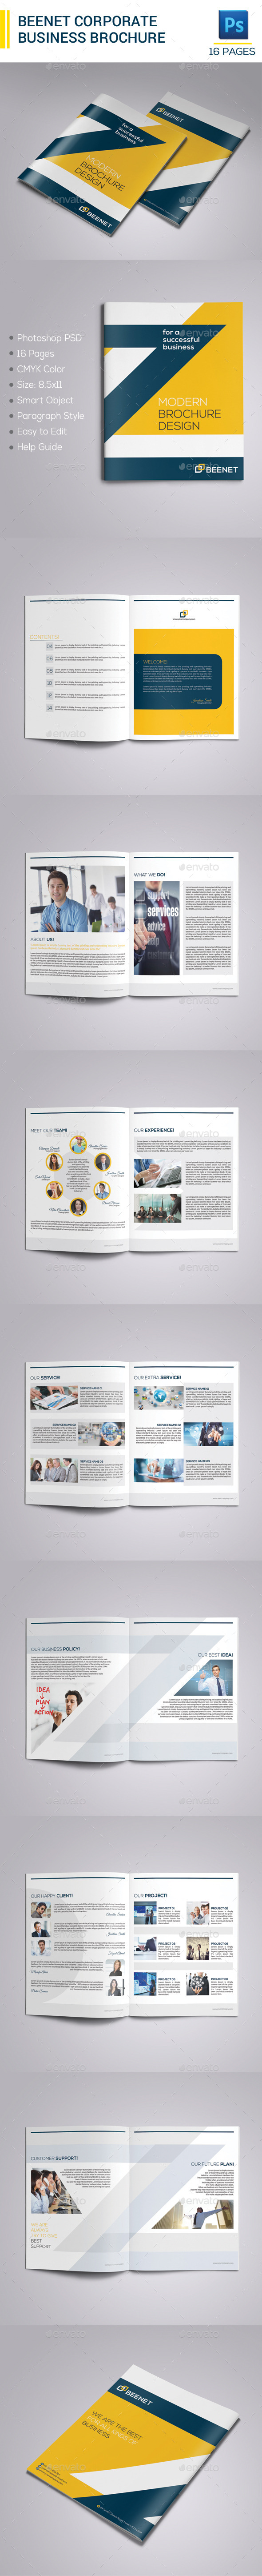 GraphicRiver Beenet Corporate Business Brochure 9384986